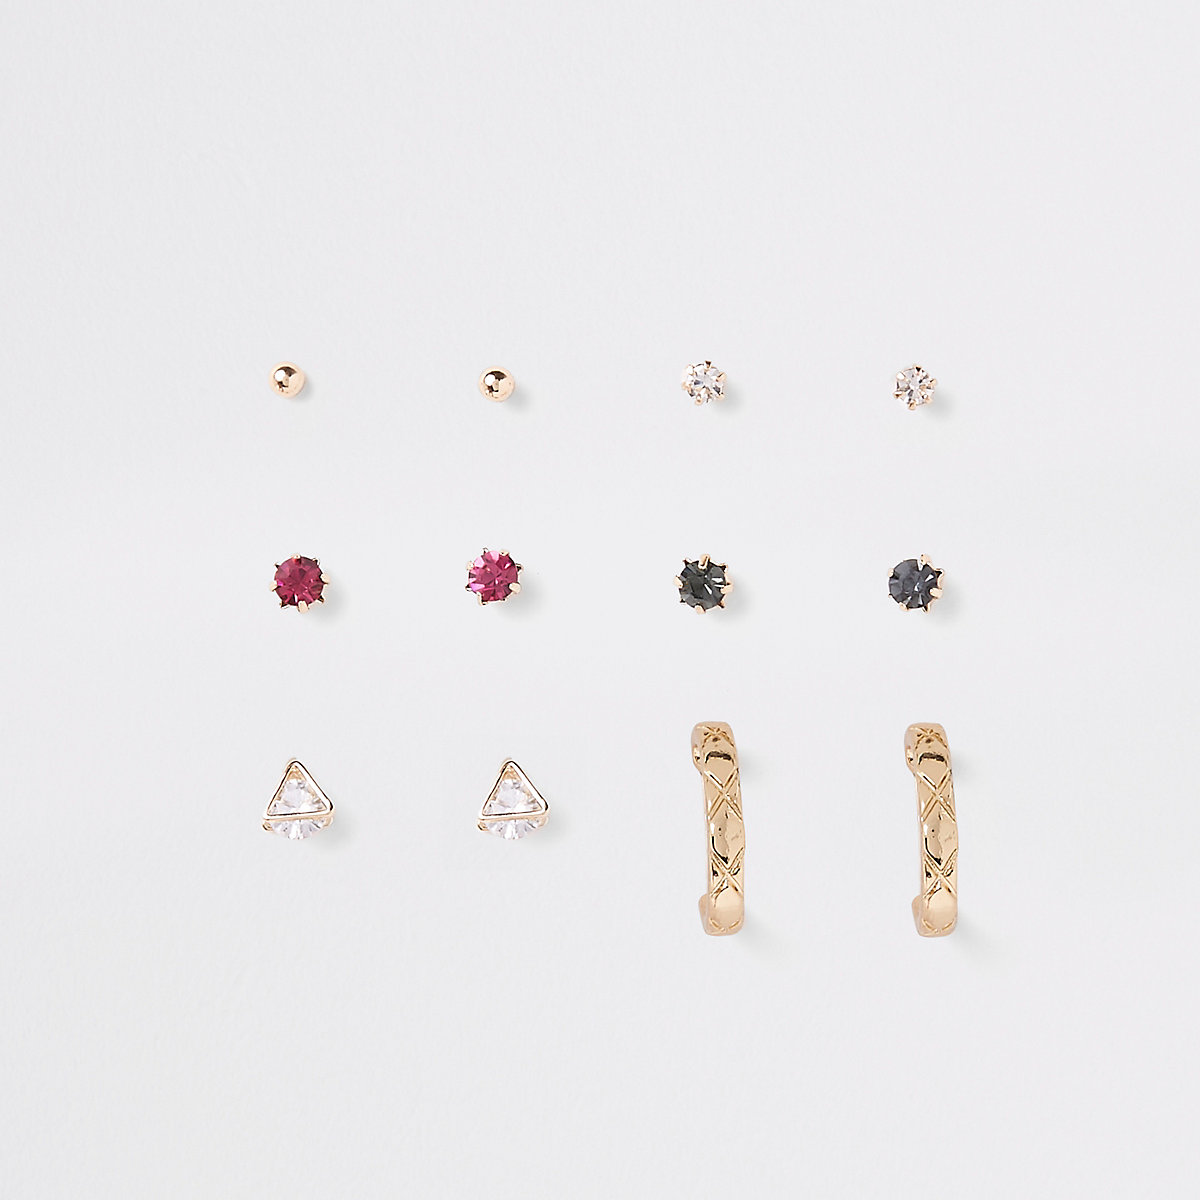 Rhinestone gold color earring multipack